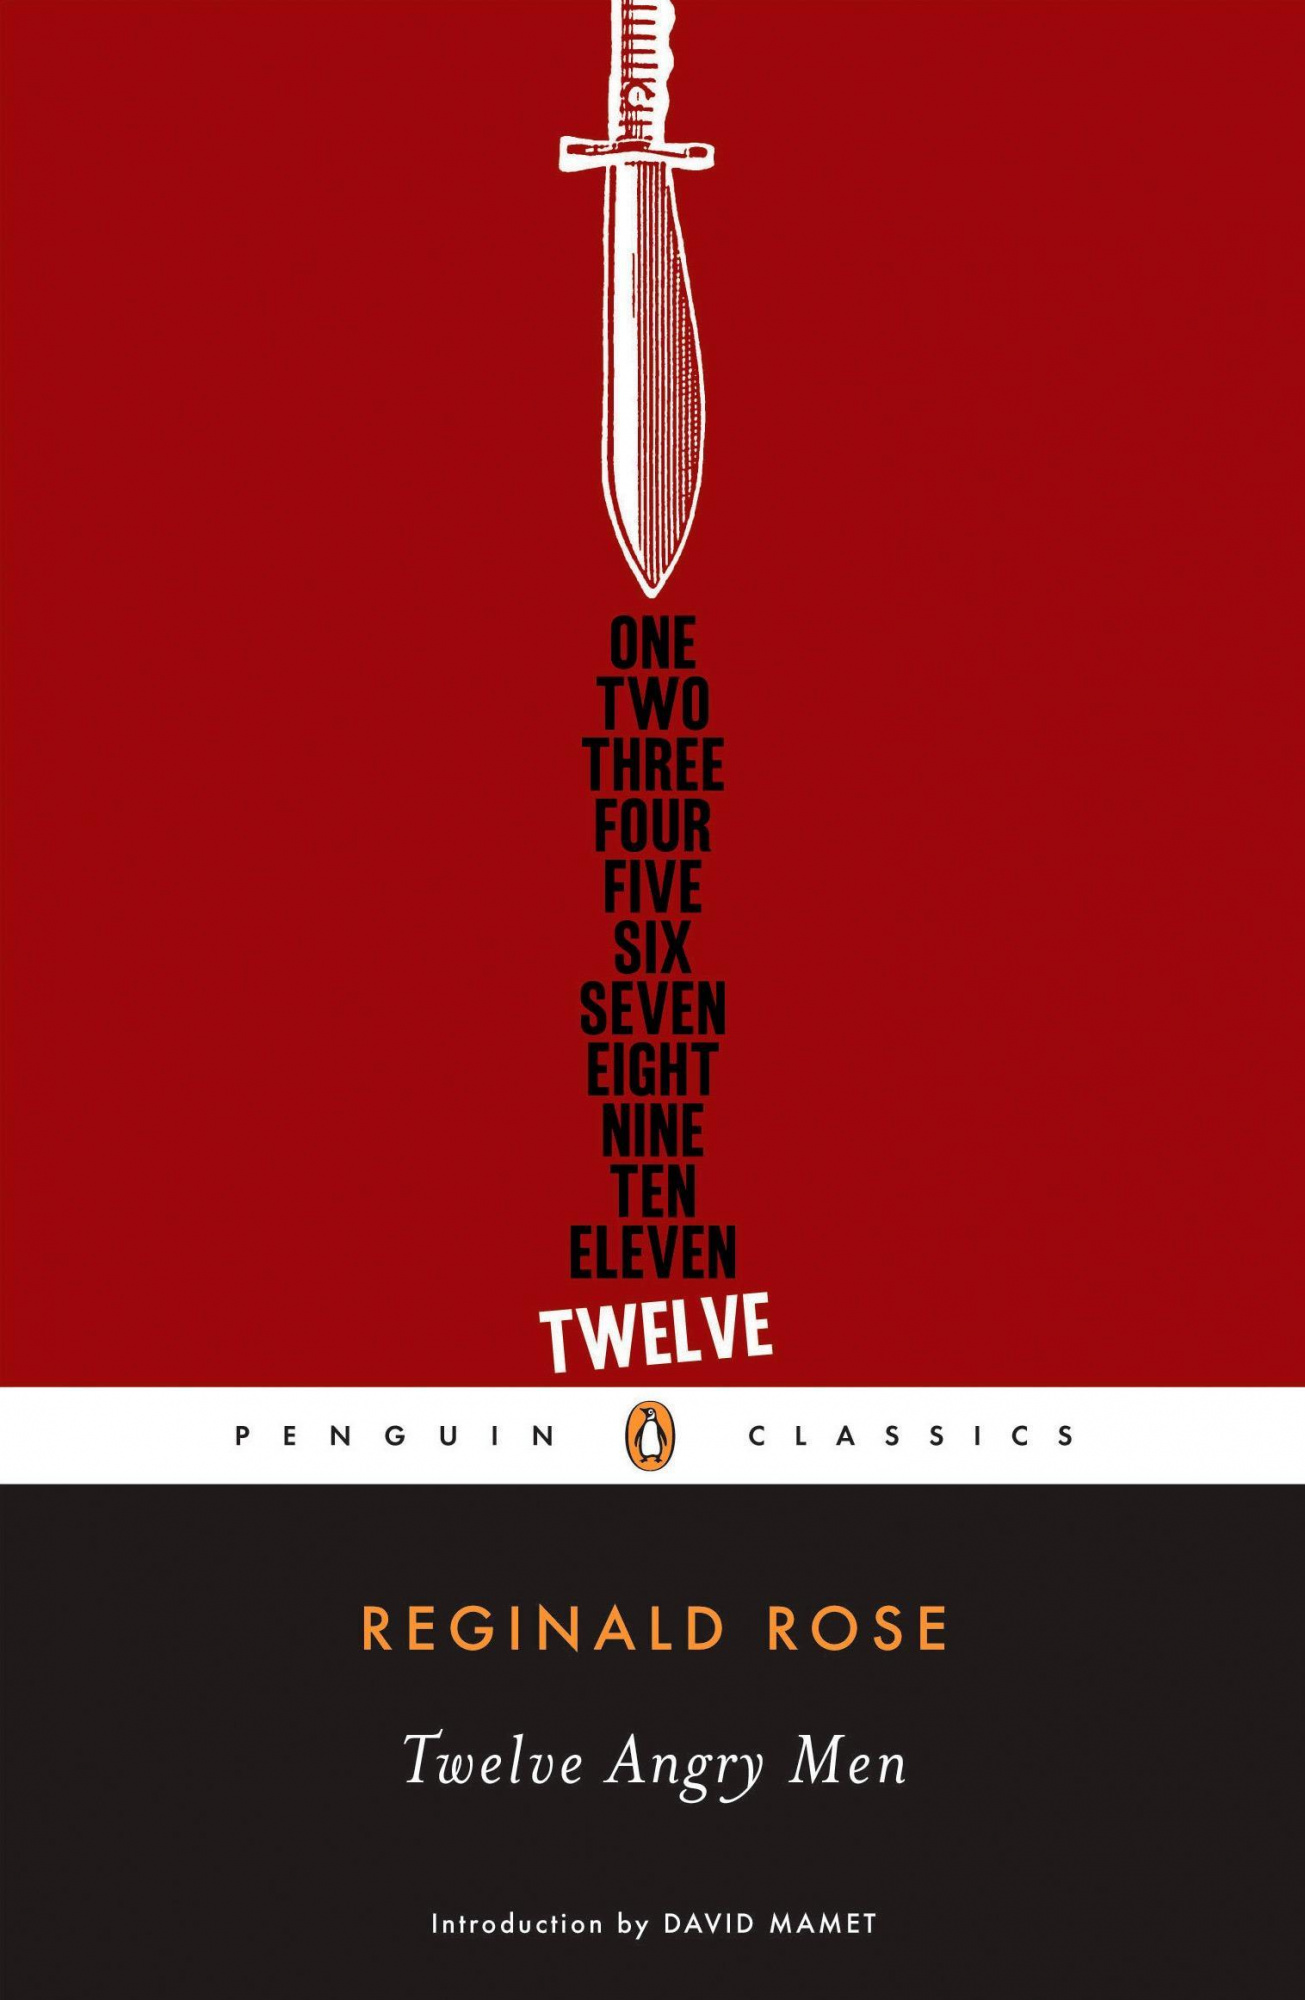 """an analysis of the play twelve angry men by reginald rose Reginald rose's """"twelve angry men"""" is many things it's a scathing critique of the nation's judicial system, it's a gut-wrenching investigation of prejudice (racial and otherwise) and."""